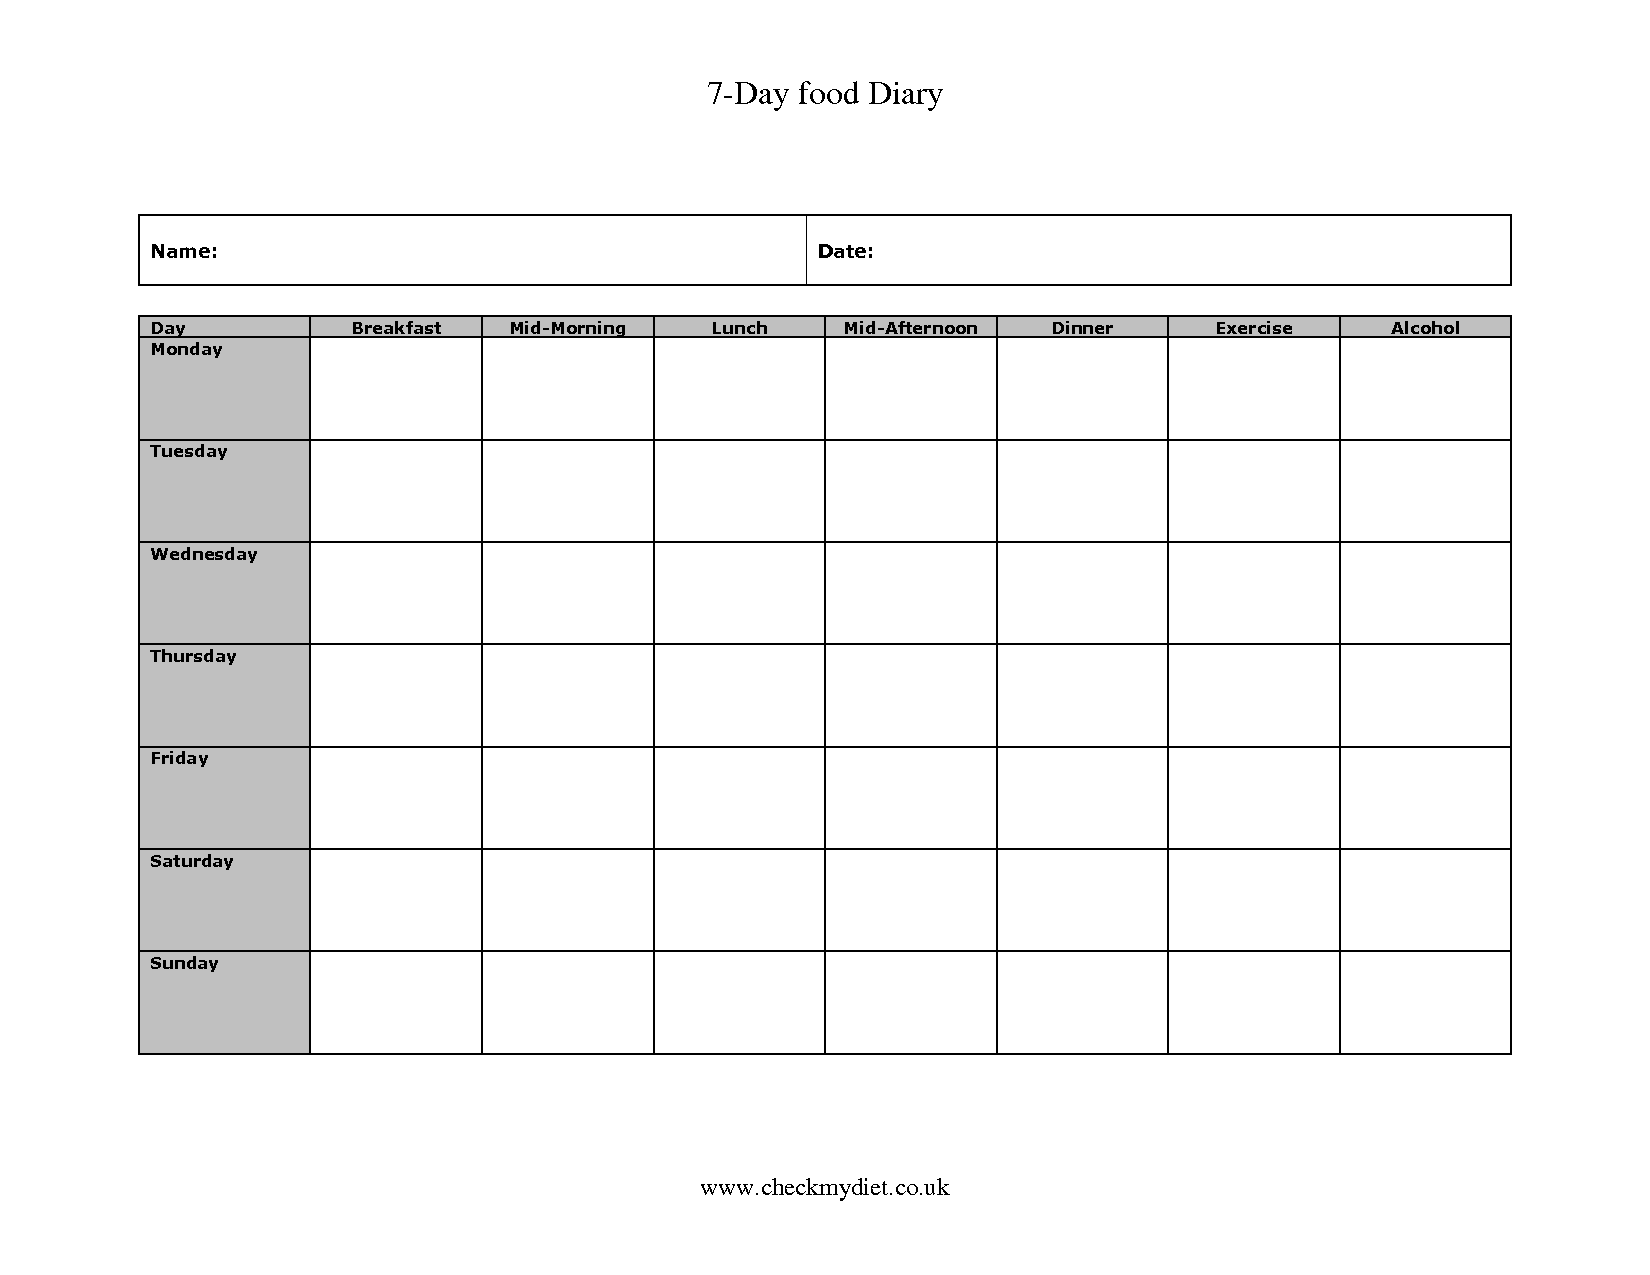 5 Images of 7-Day Food Diary Printable